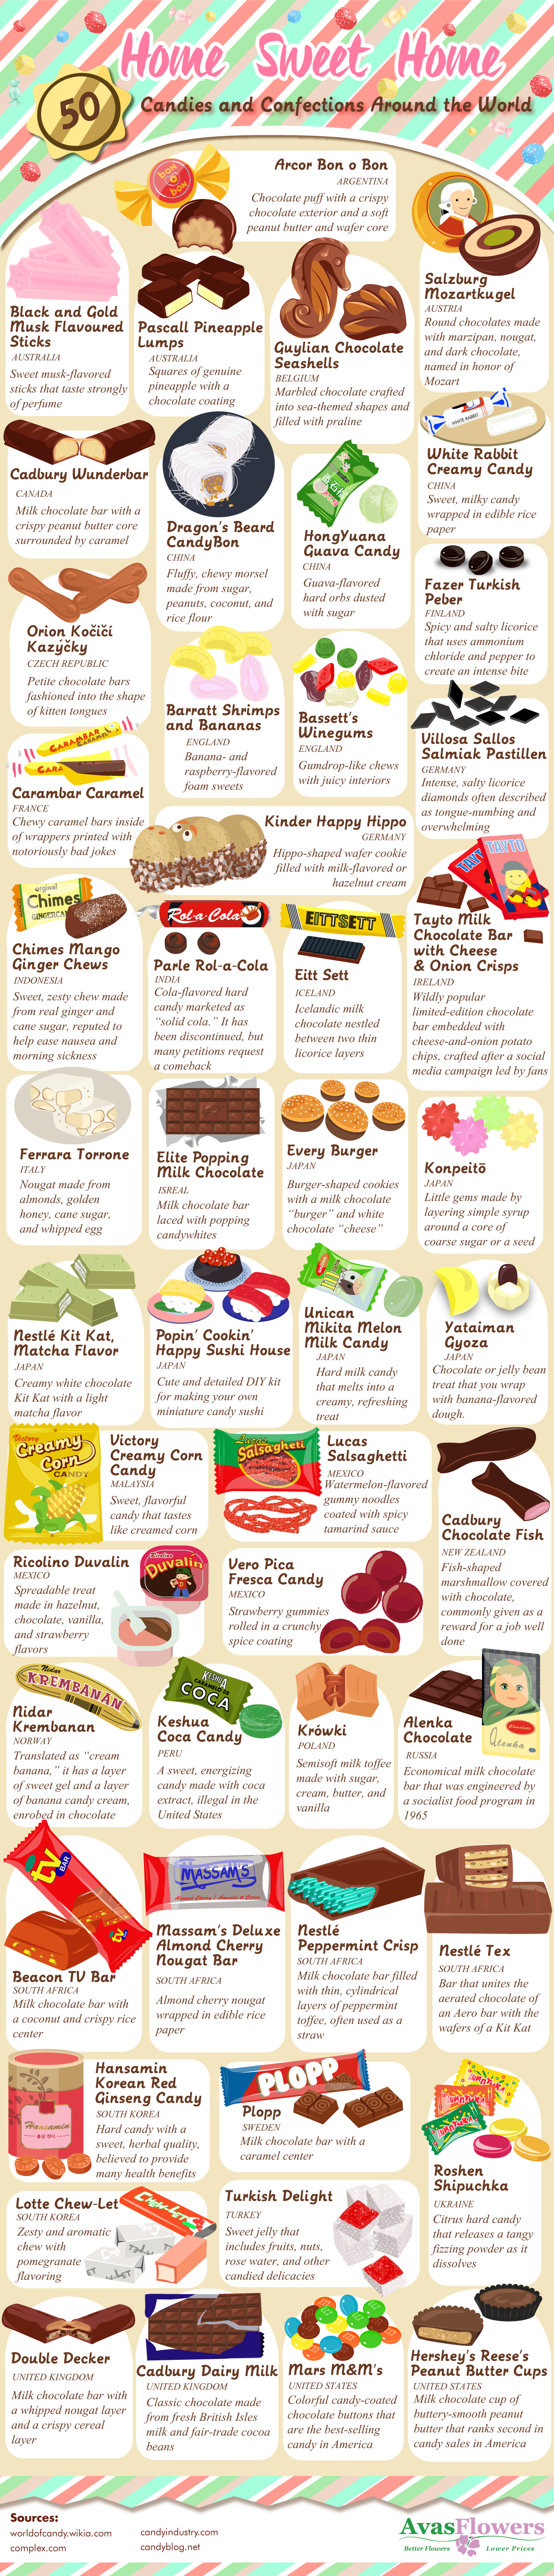 Home Sweet Home: Candies and Confections Around the World - Avasflowers.net - Infographic